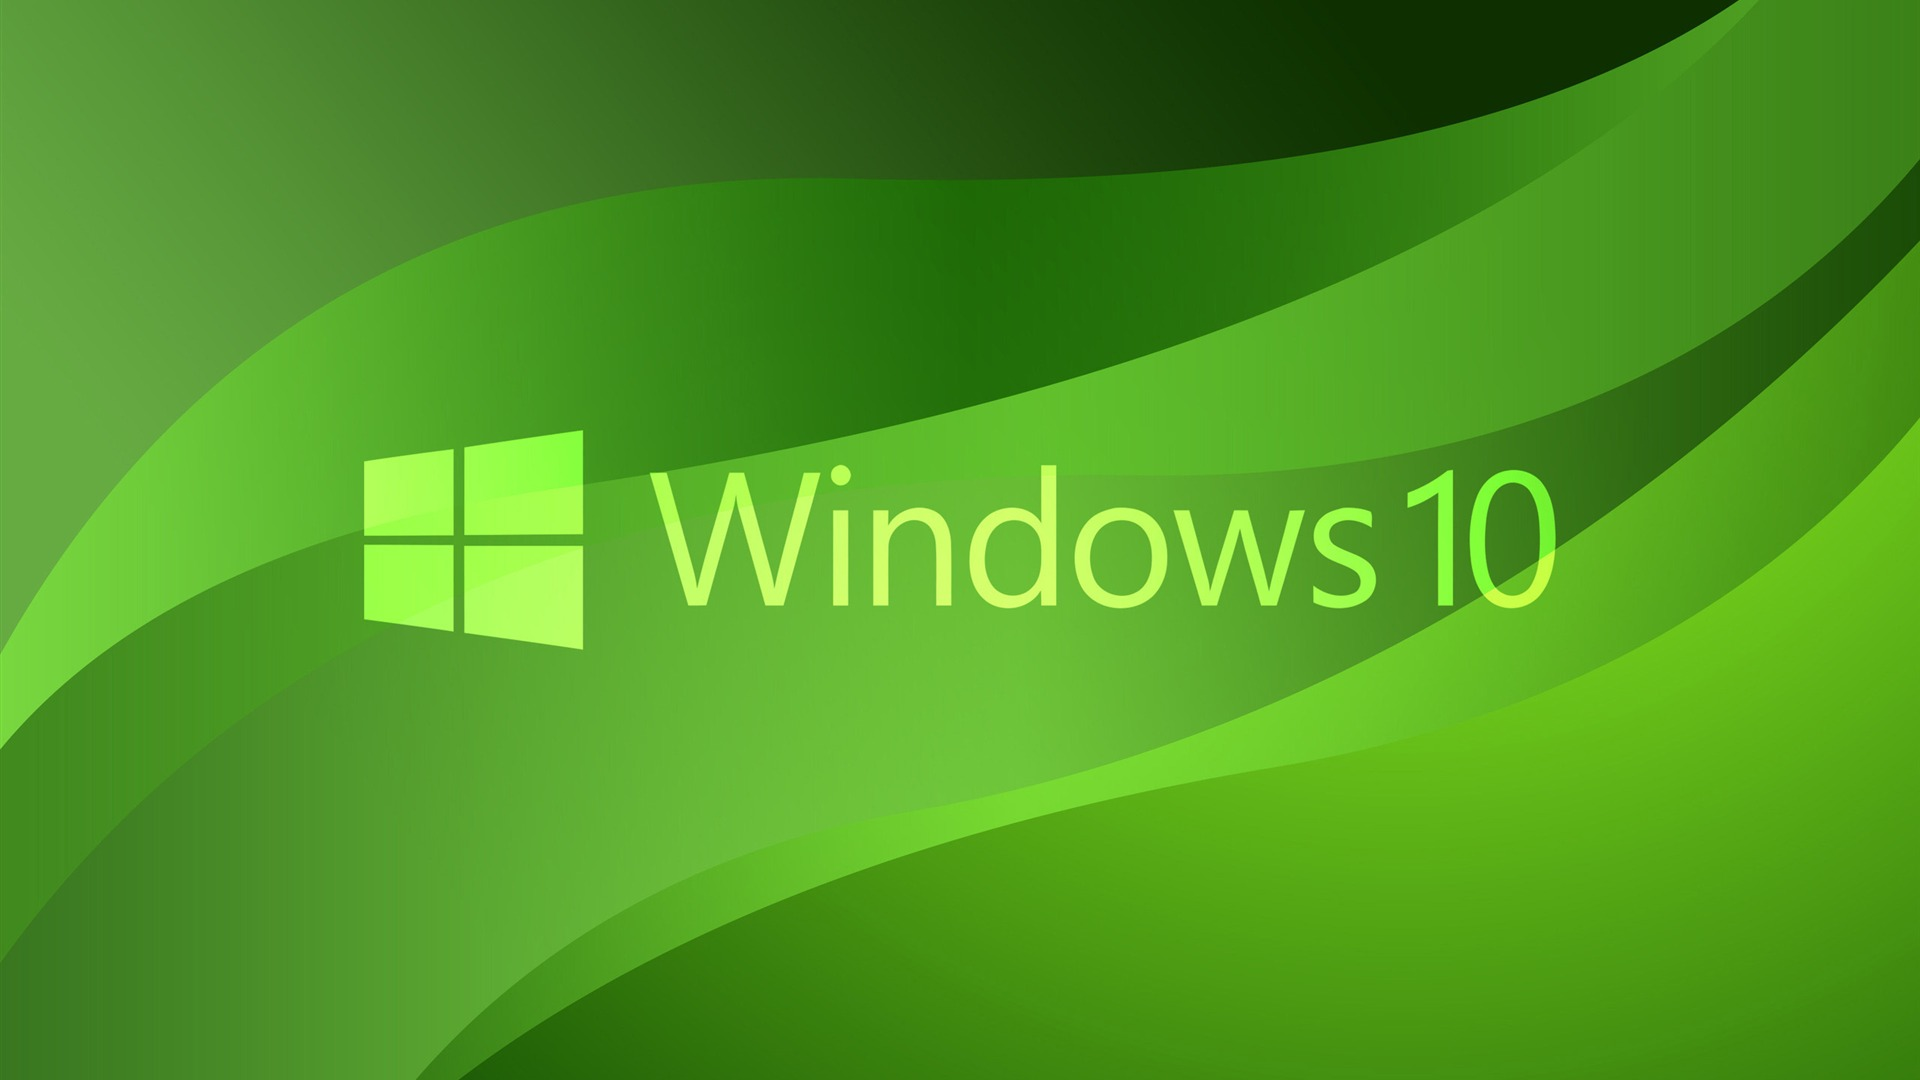 How To Install Windows 10/8 On Mac